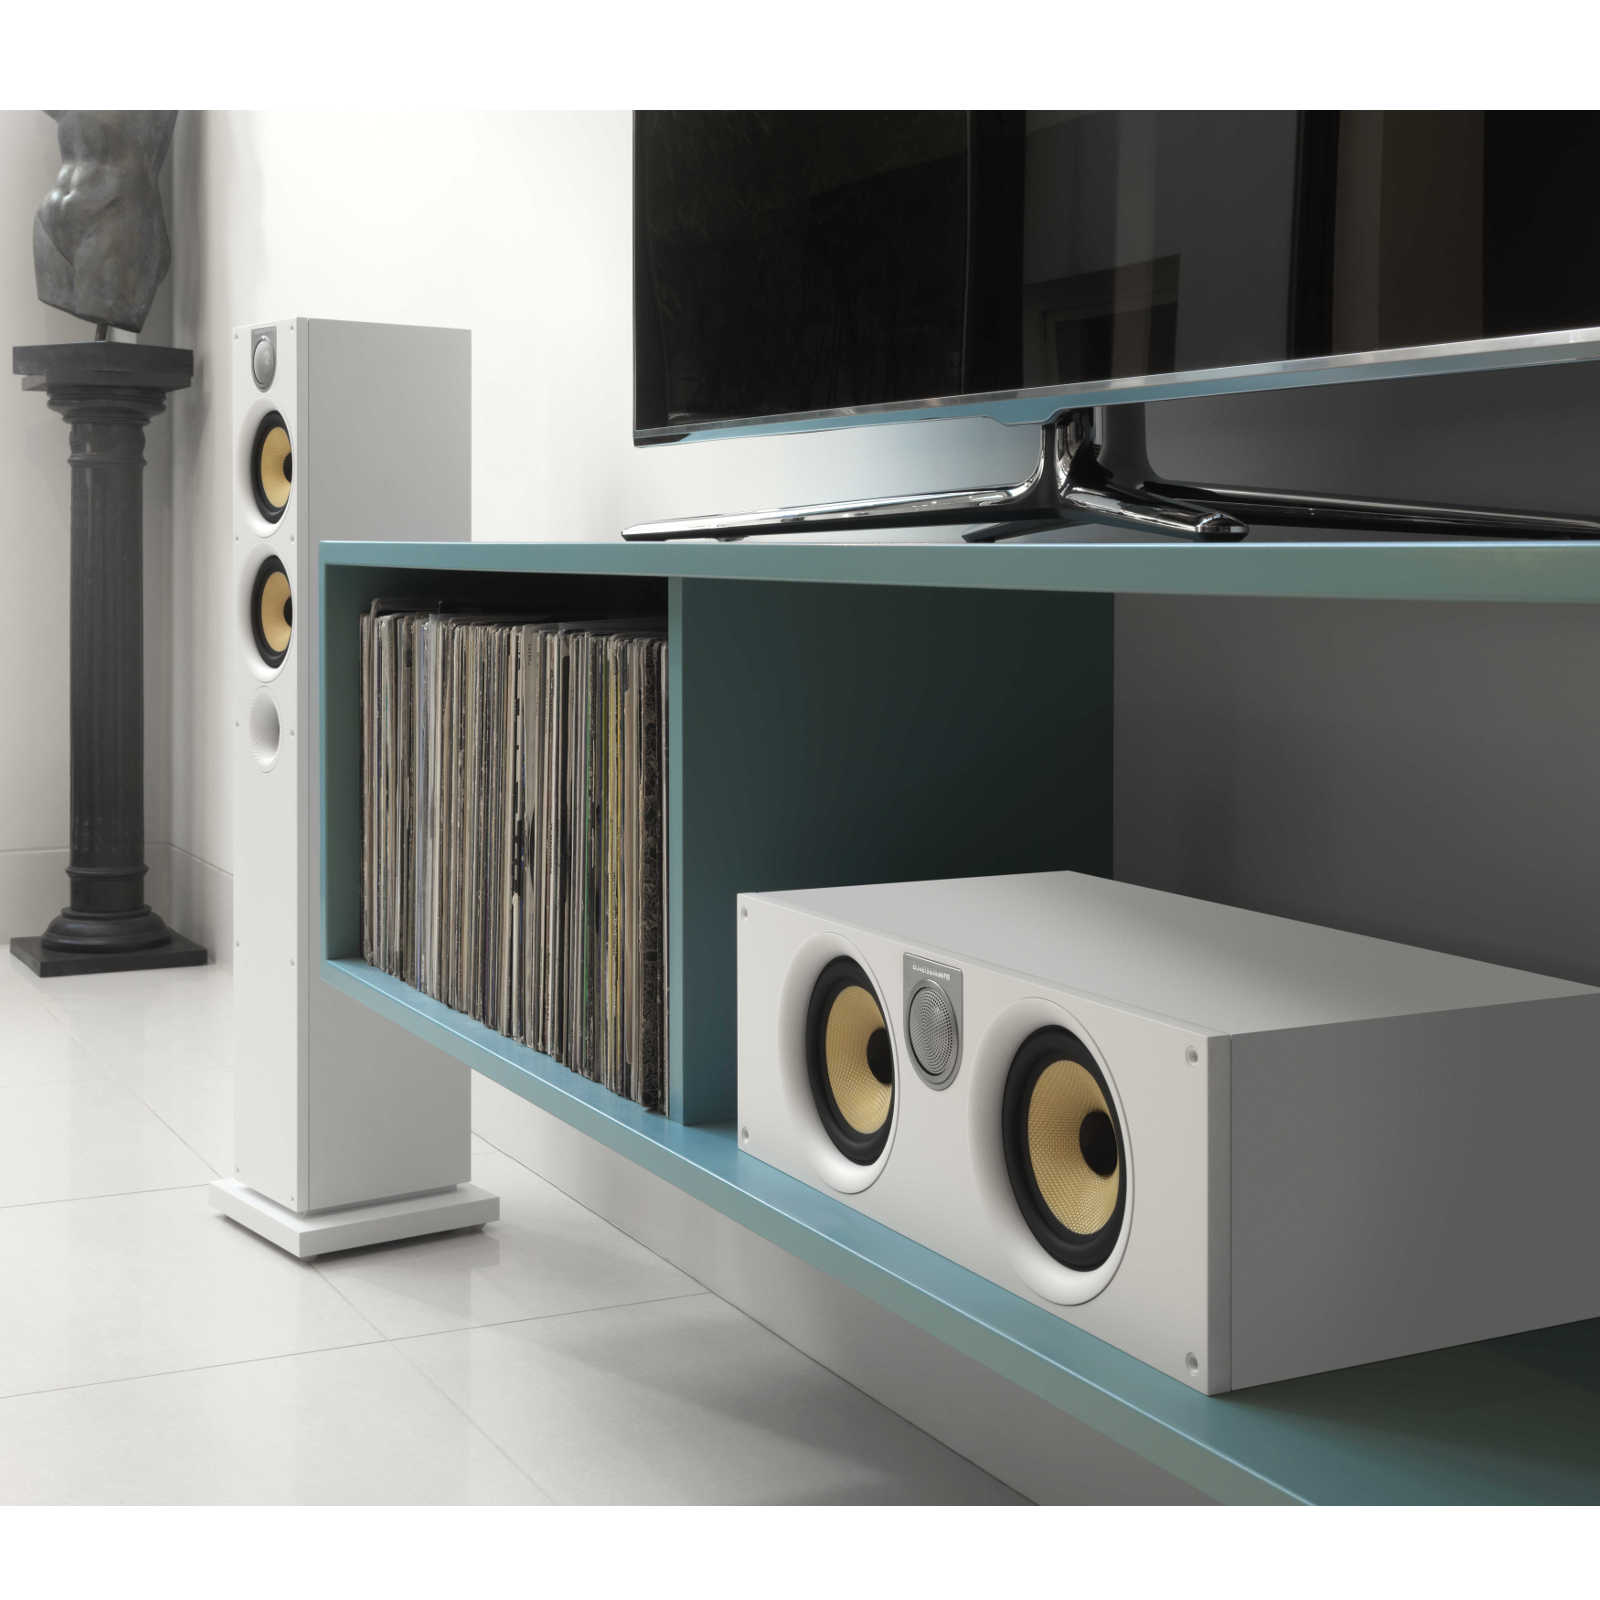 Meuble Tv Pour Ampli Home Cinema B Andw Htm62 S2 Blanc Enceintes Hifi Bowers And Wilkins Sur